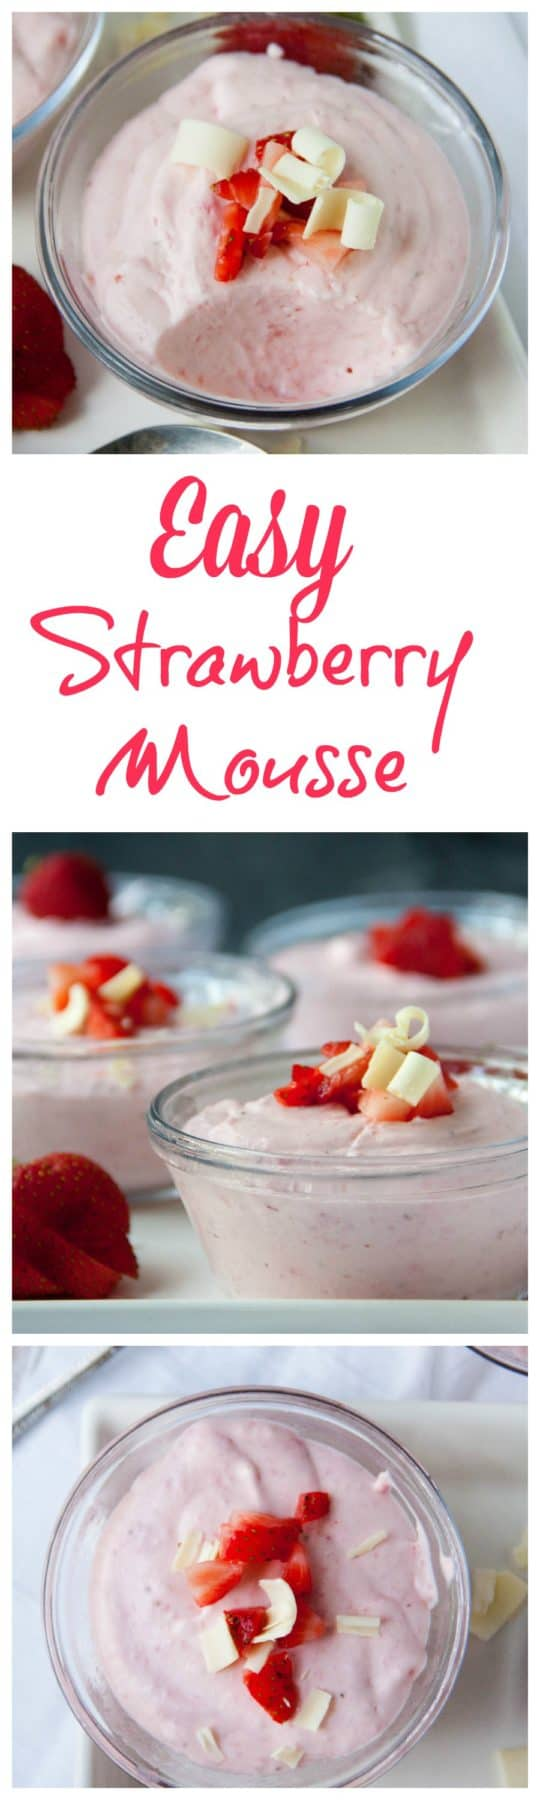 Easy strawberry mousse no eggs required boston girl bakes when ready to serve you can top with whipped cream chopped strawberries andor shaved white chocolate easy strawberry mousse sisterspd